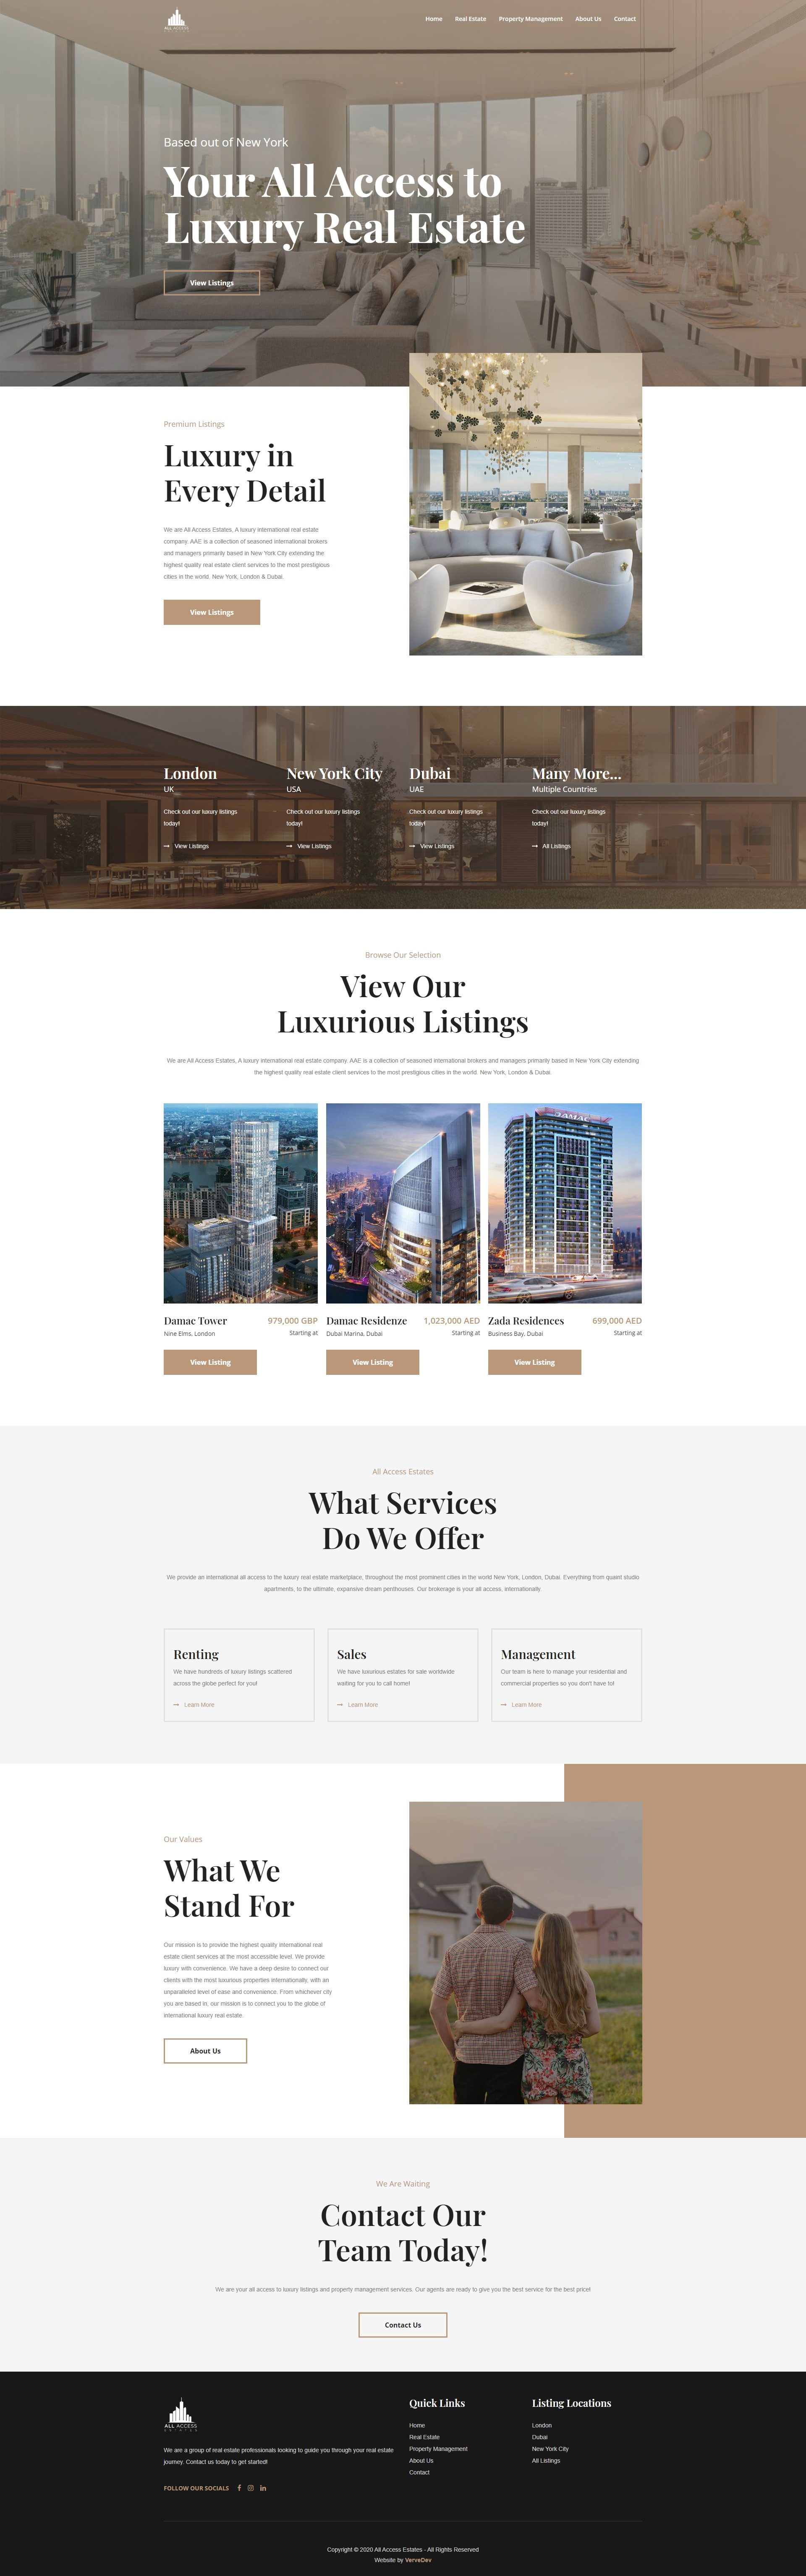 kingston-website-design-portfolio-2